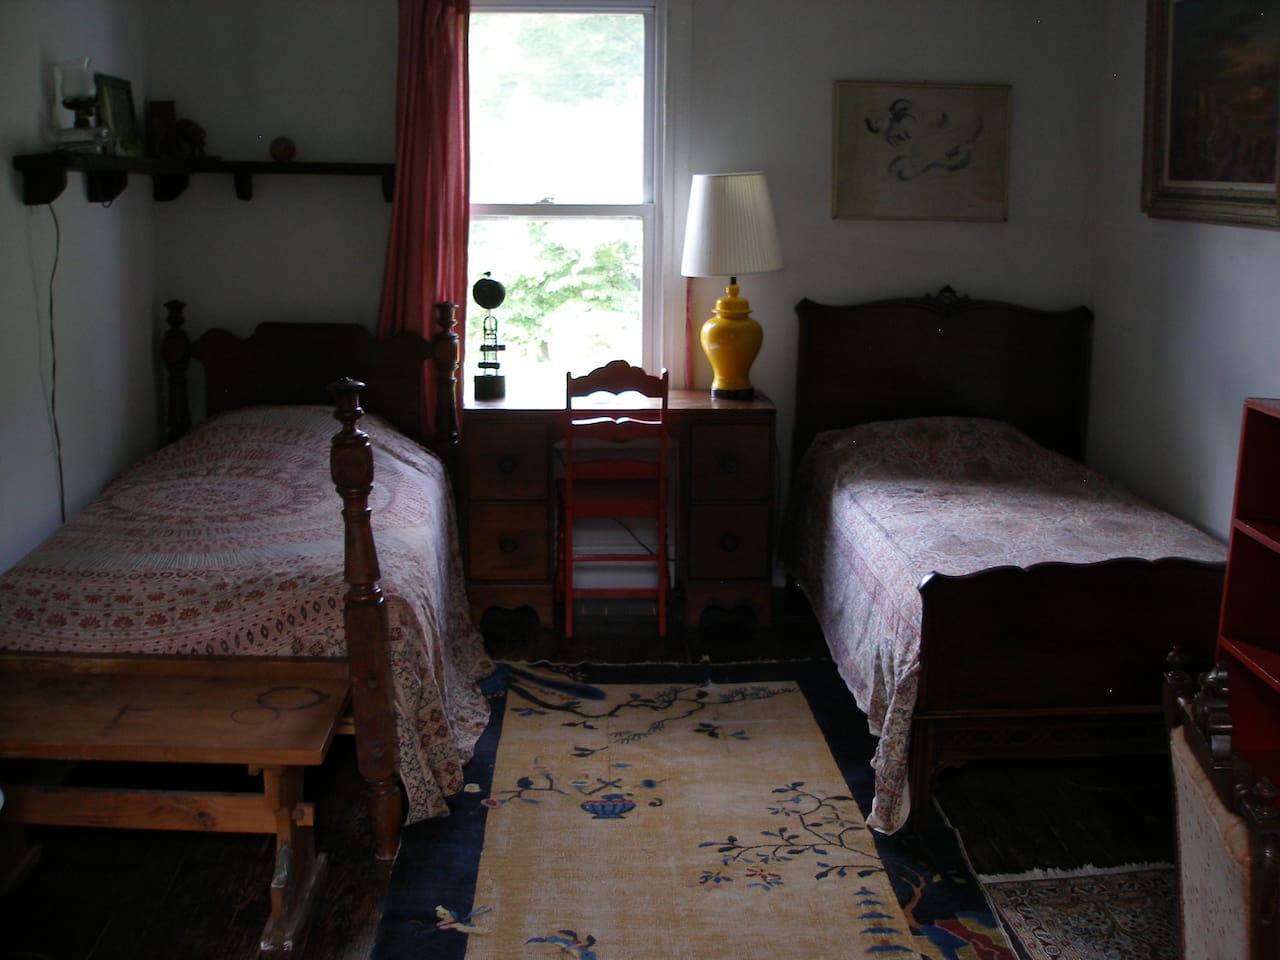 This bedroom has 2 twin beds. The cost is $70 per bed per night.